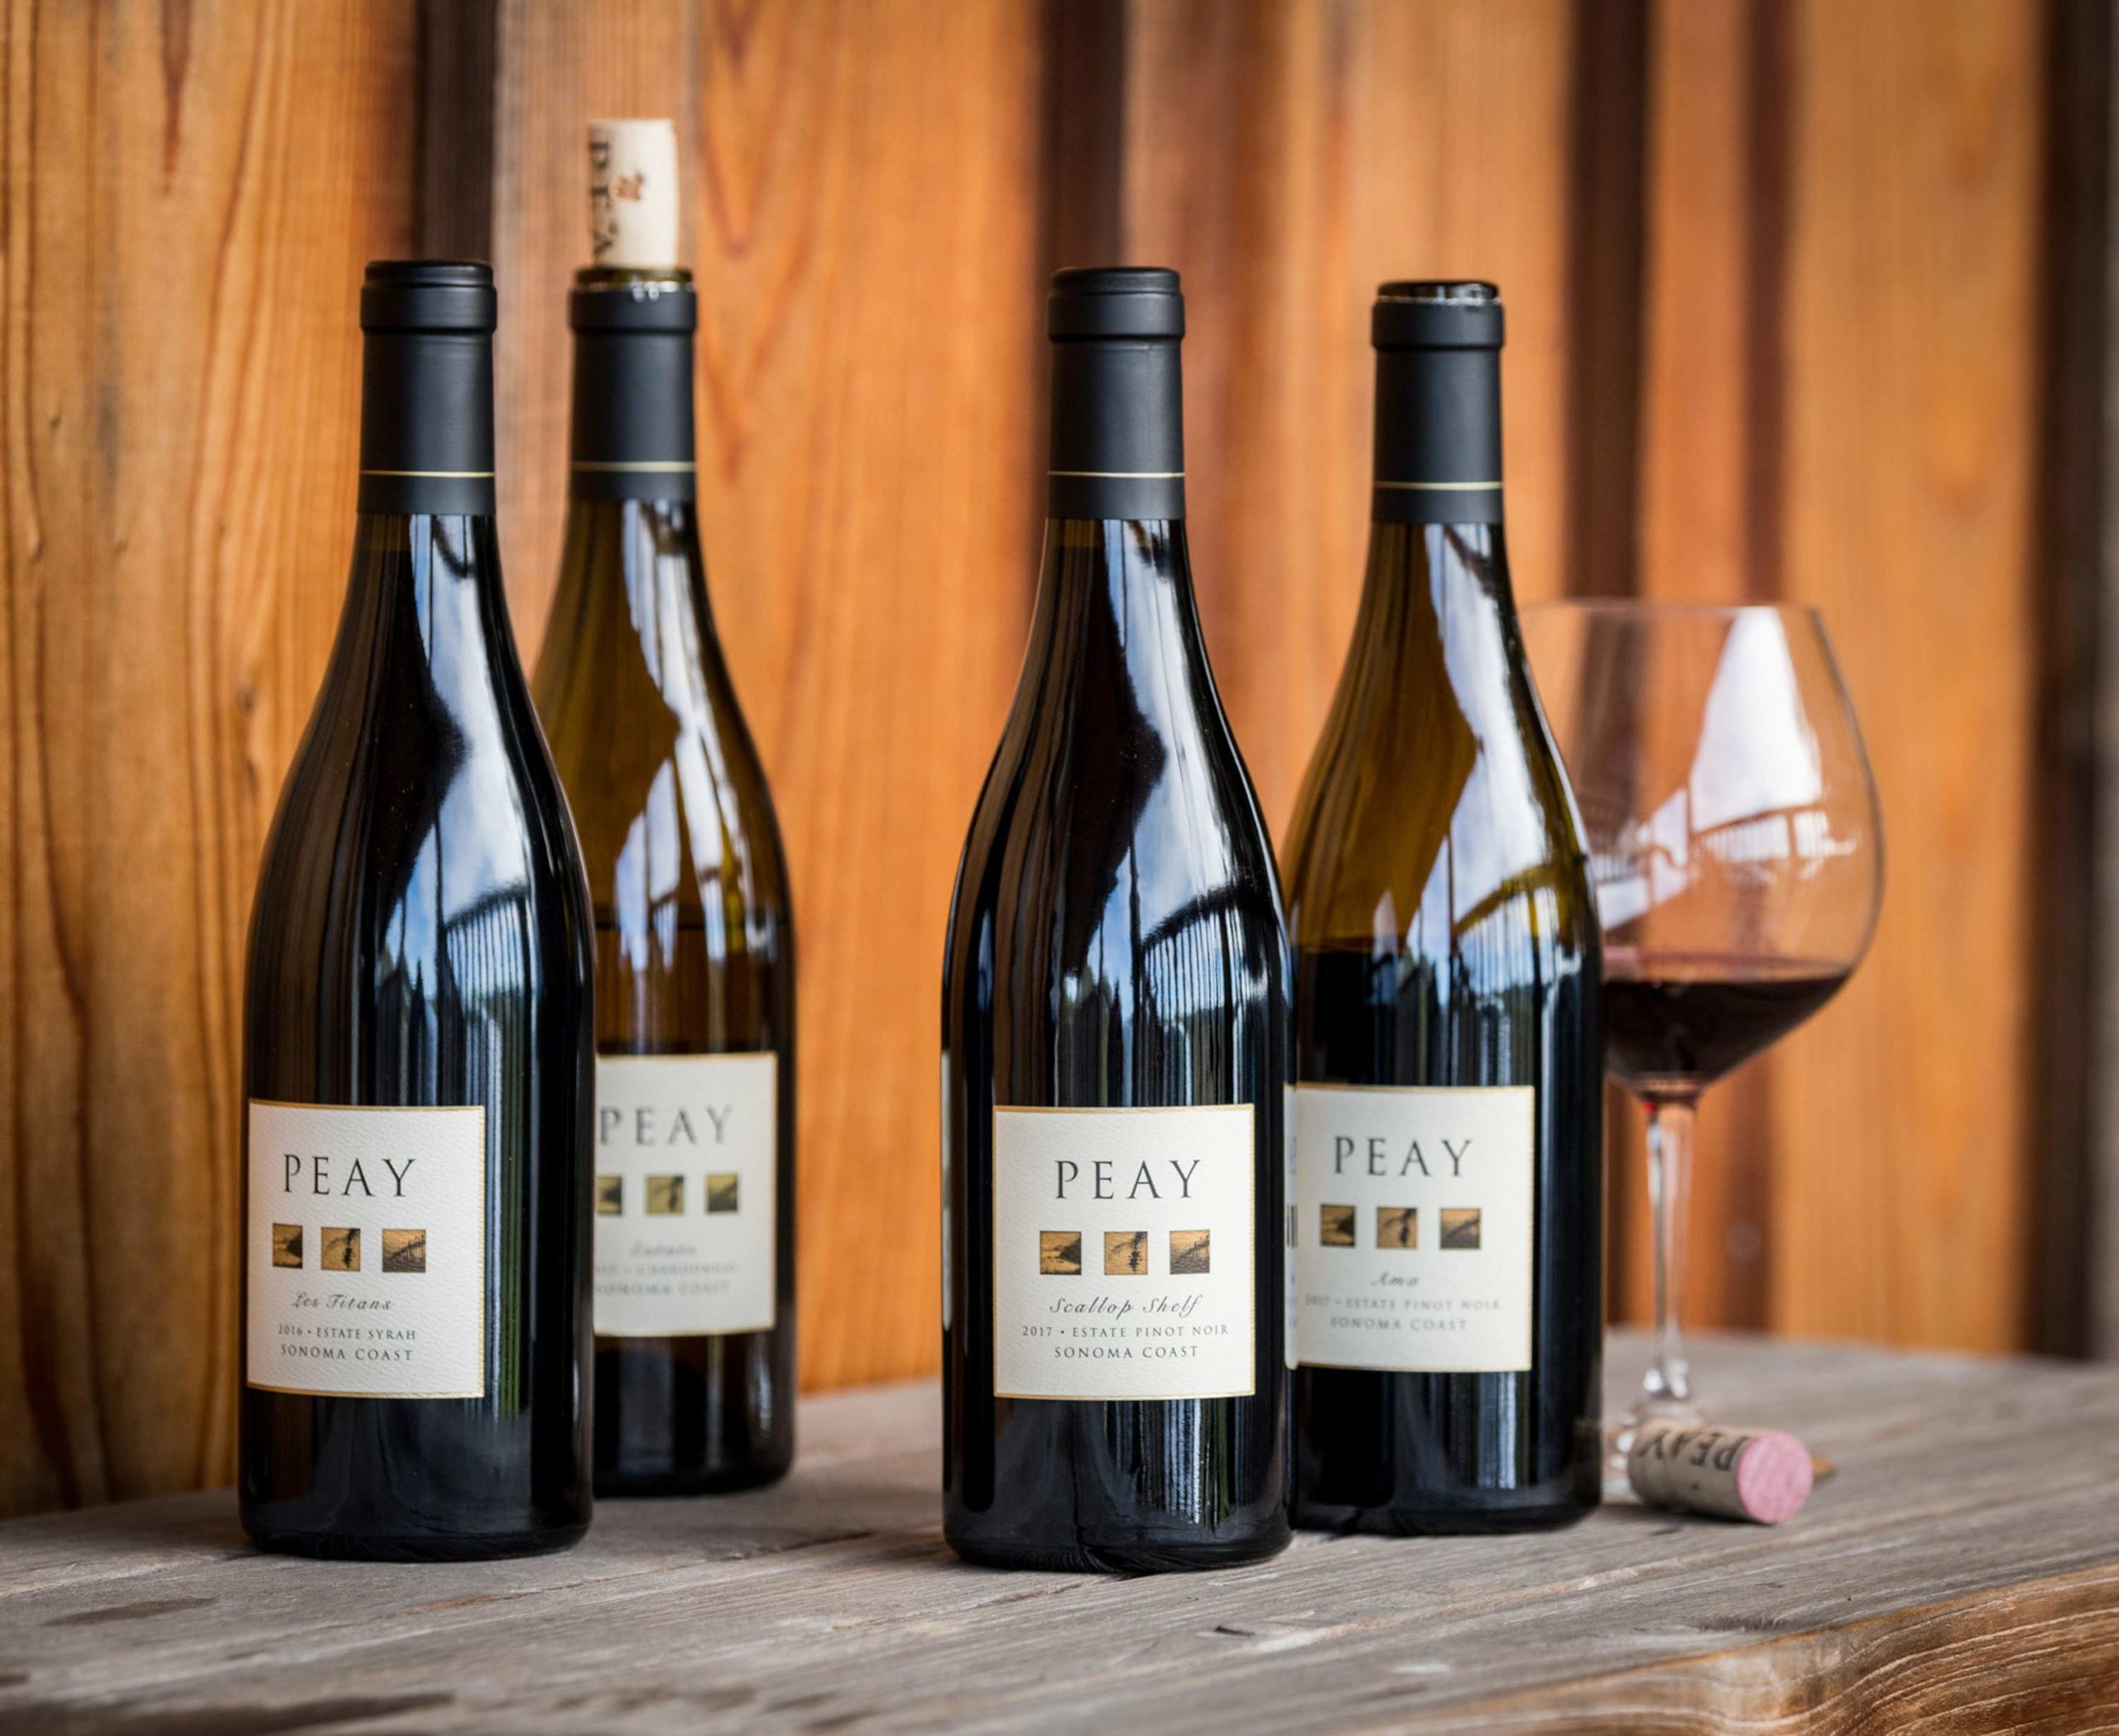 Featured image for Article: 2015 Peay Vineyards Les Titans Estate Syrah, Sonoma Coast